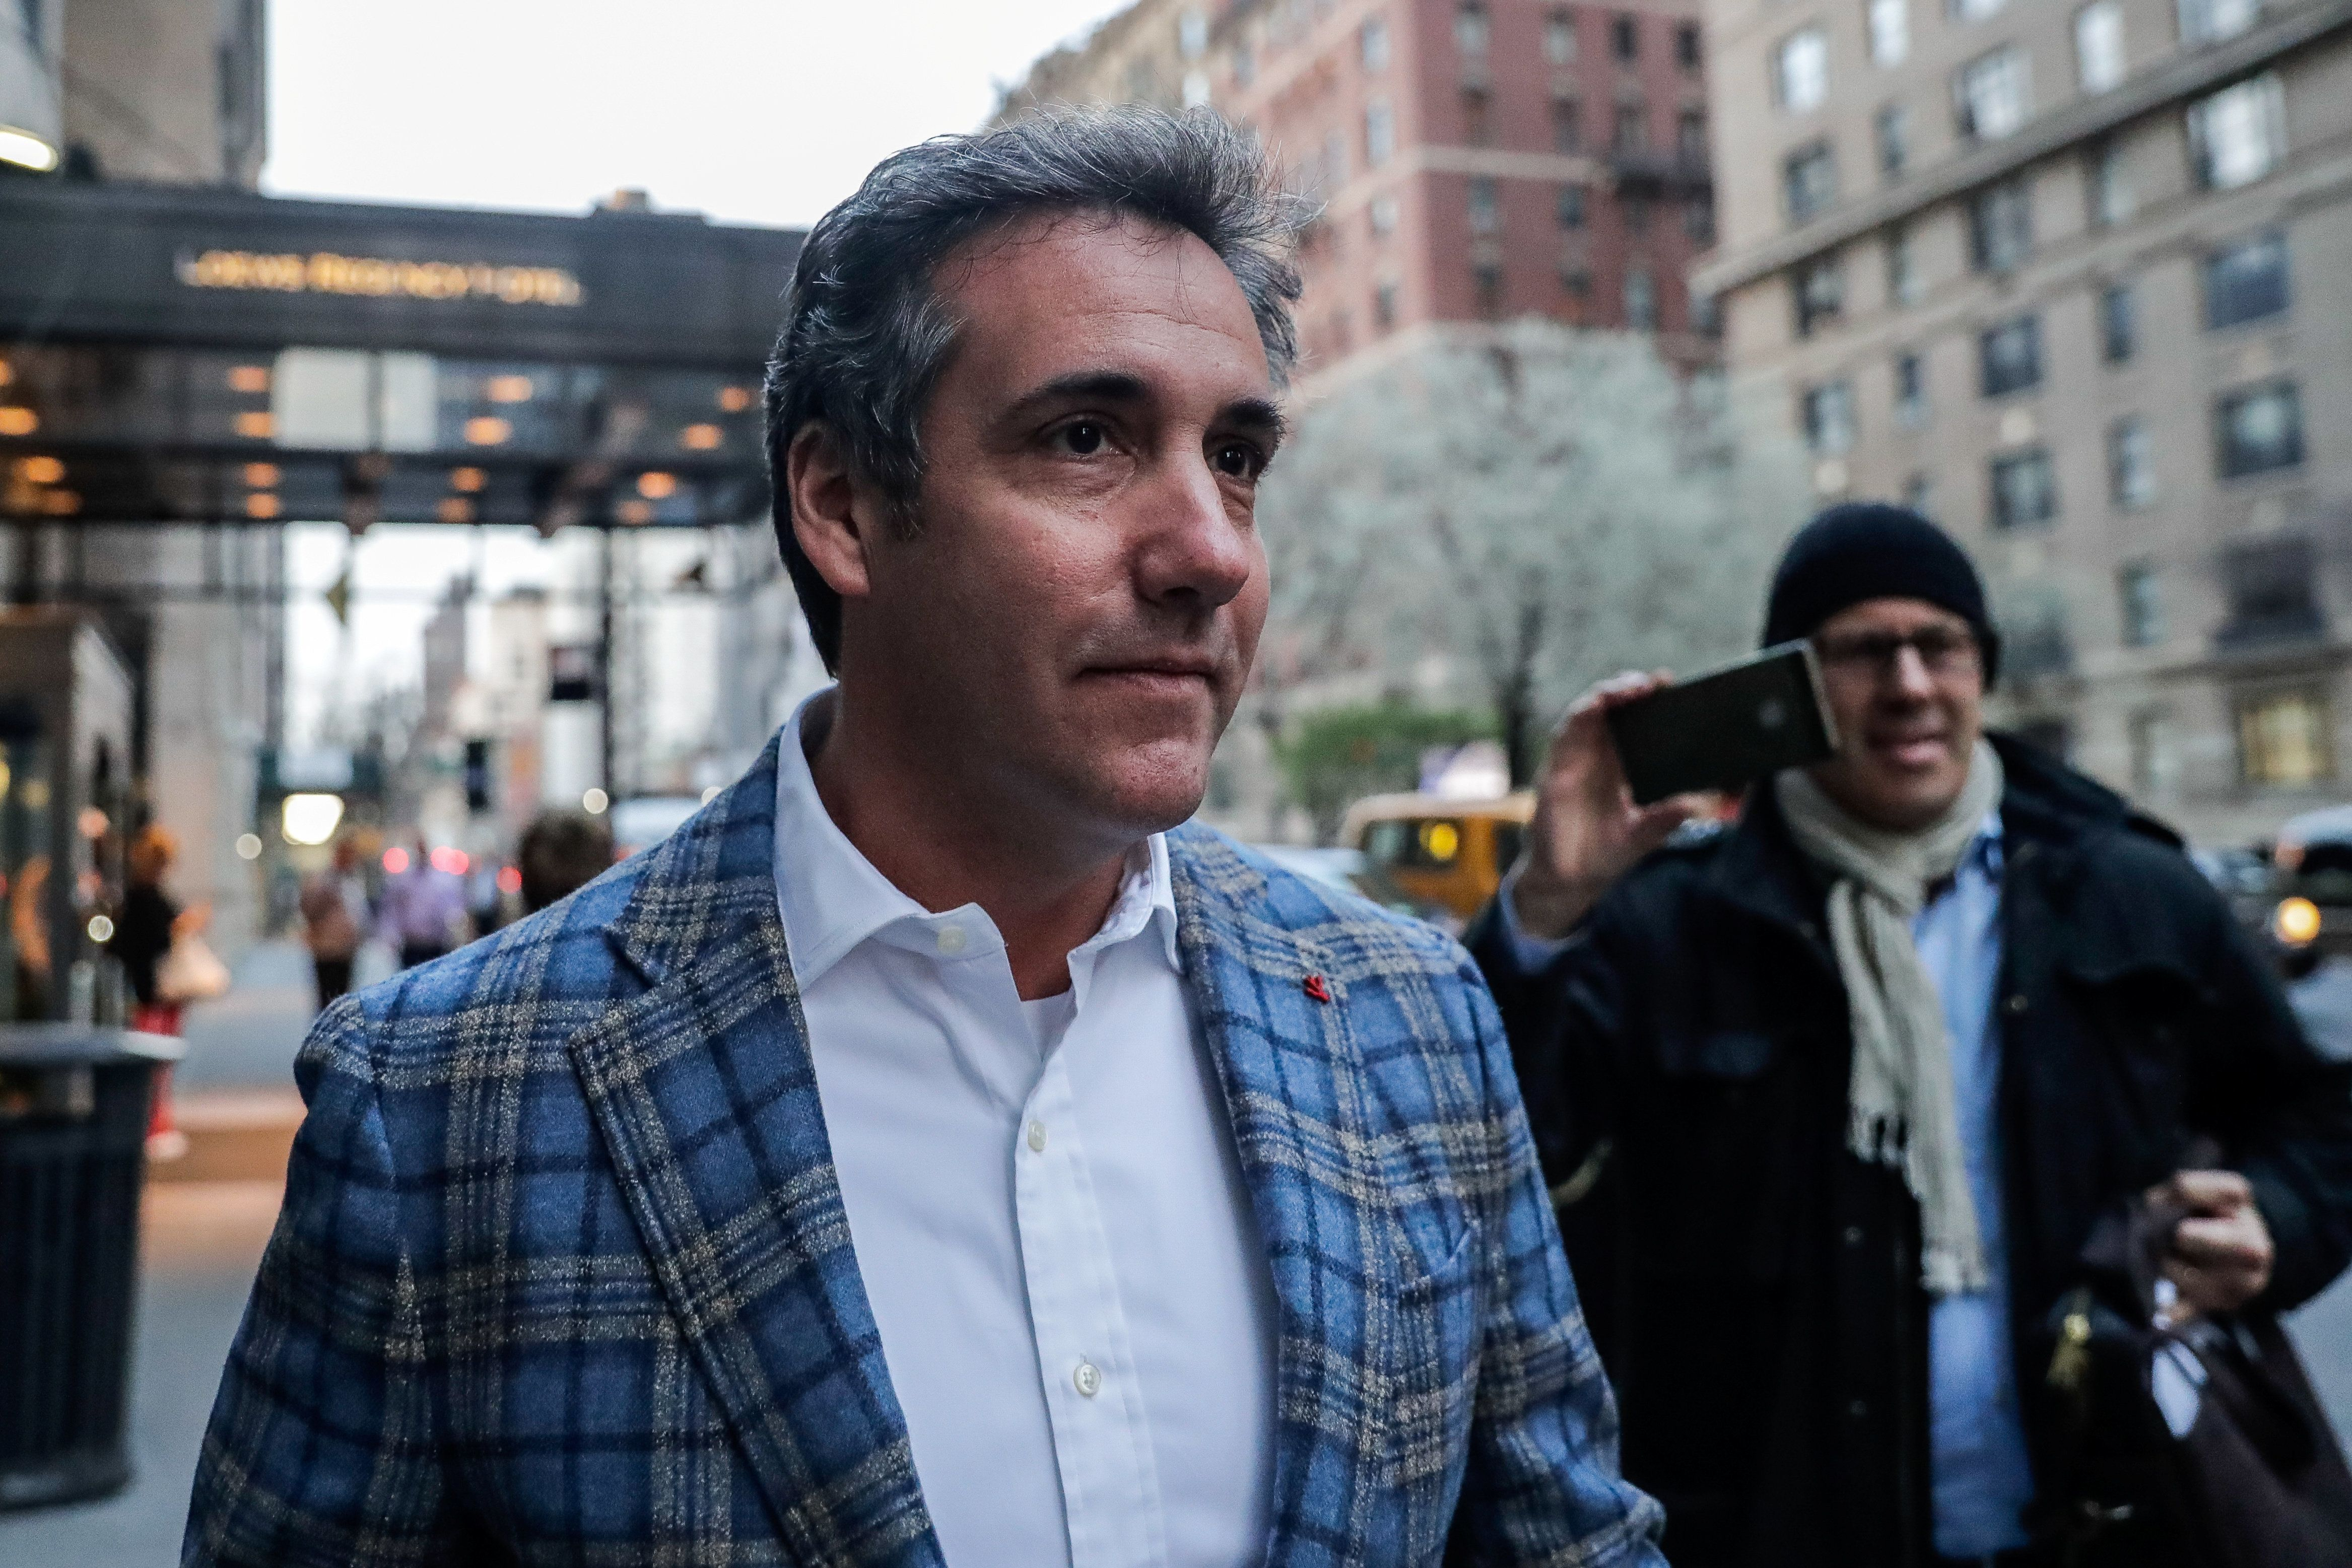 Michael Cohen used to be intensely loyal to President Donald